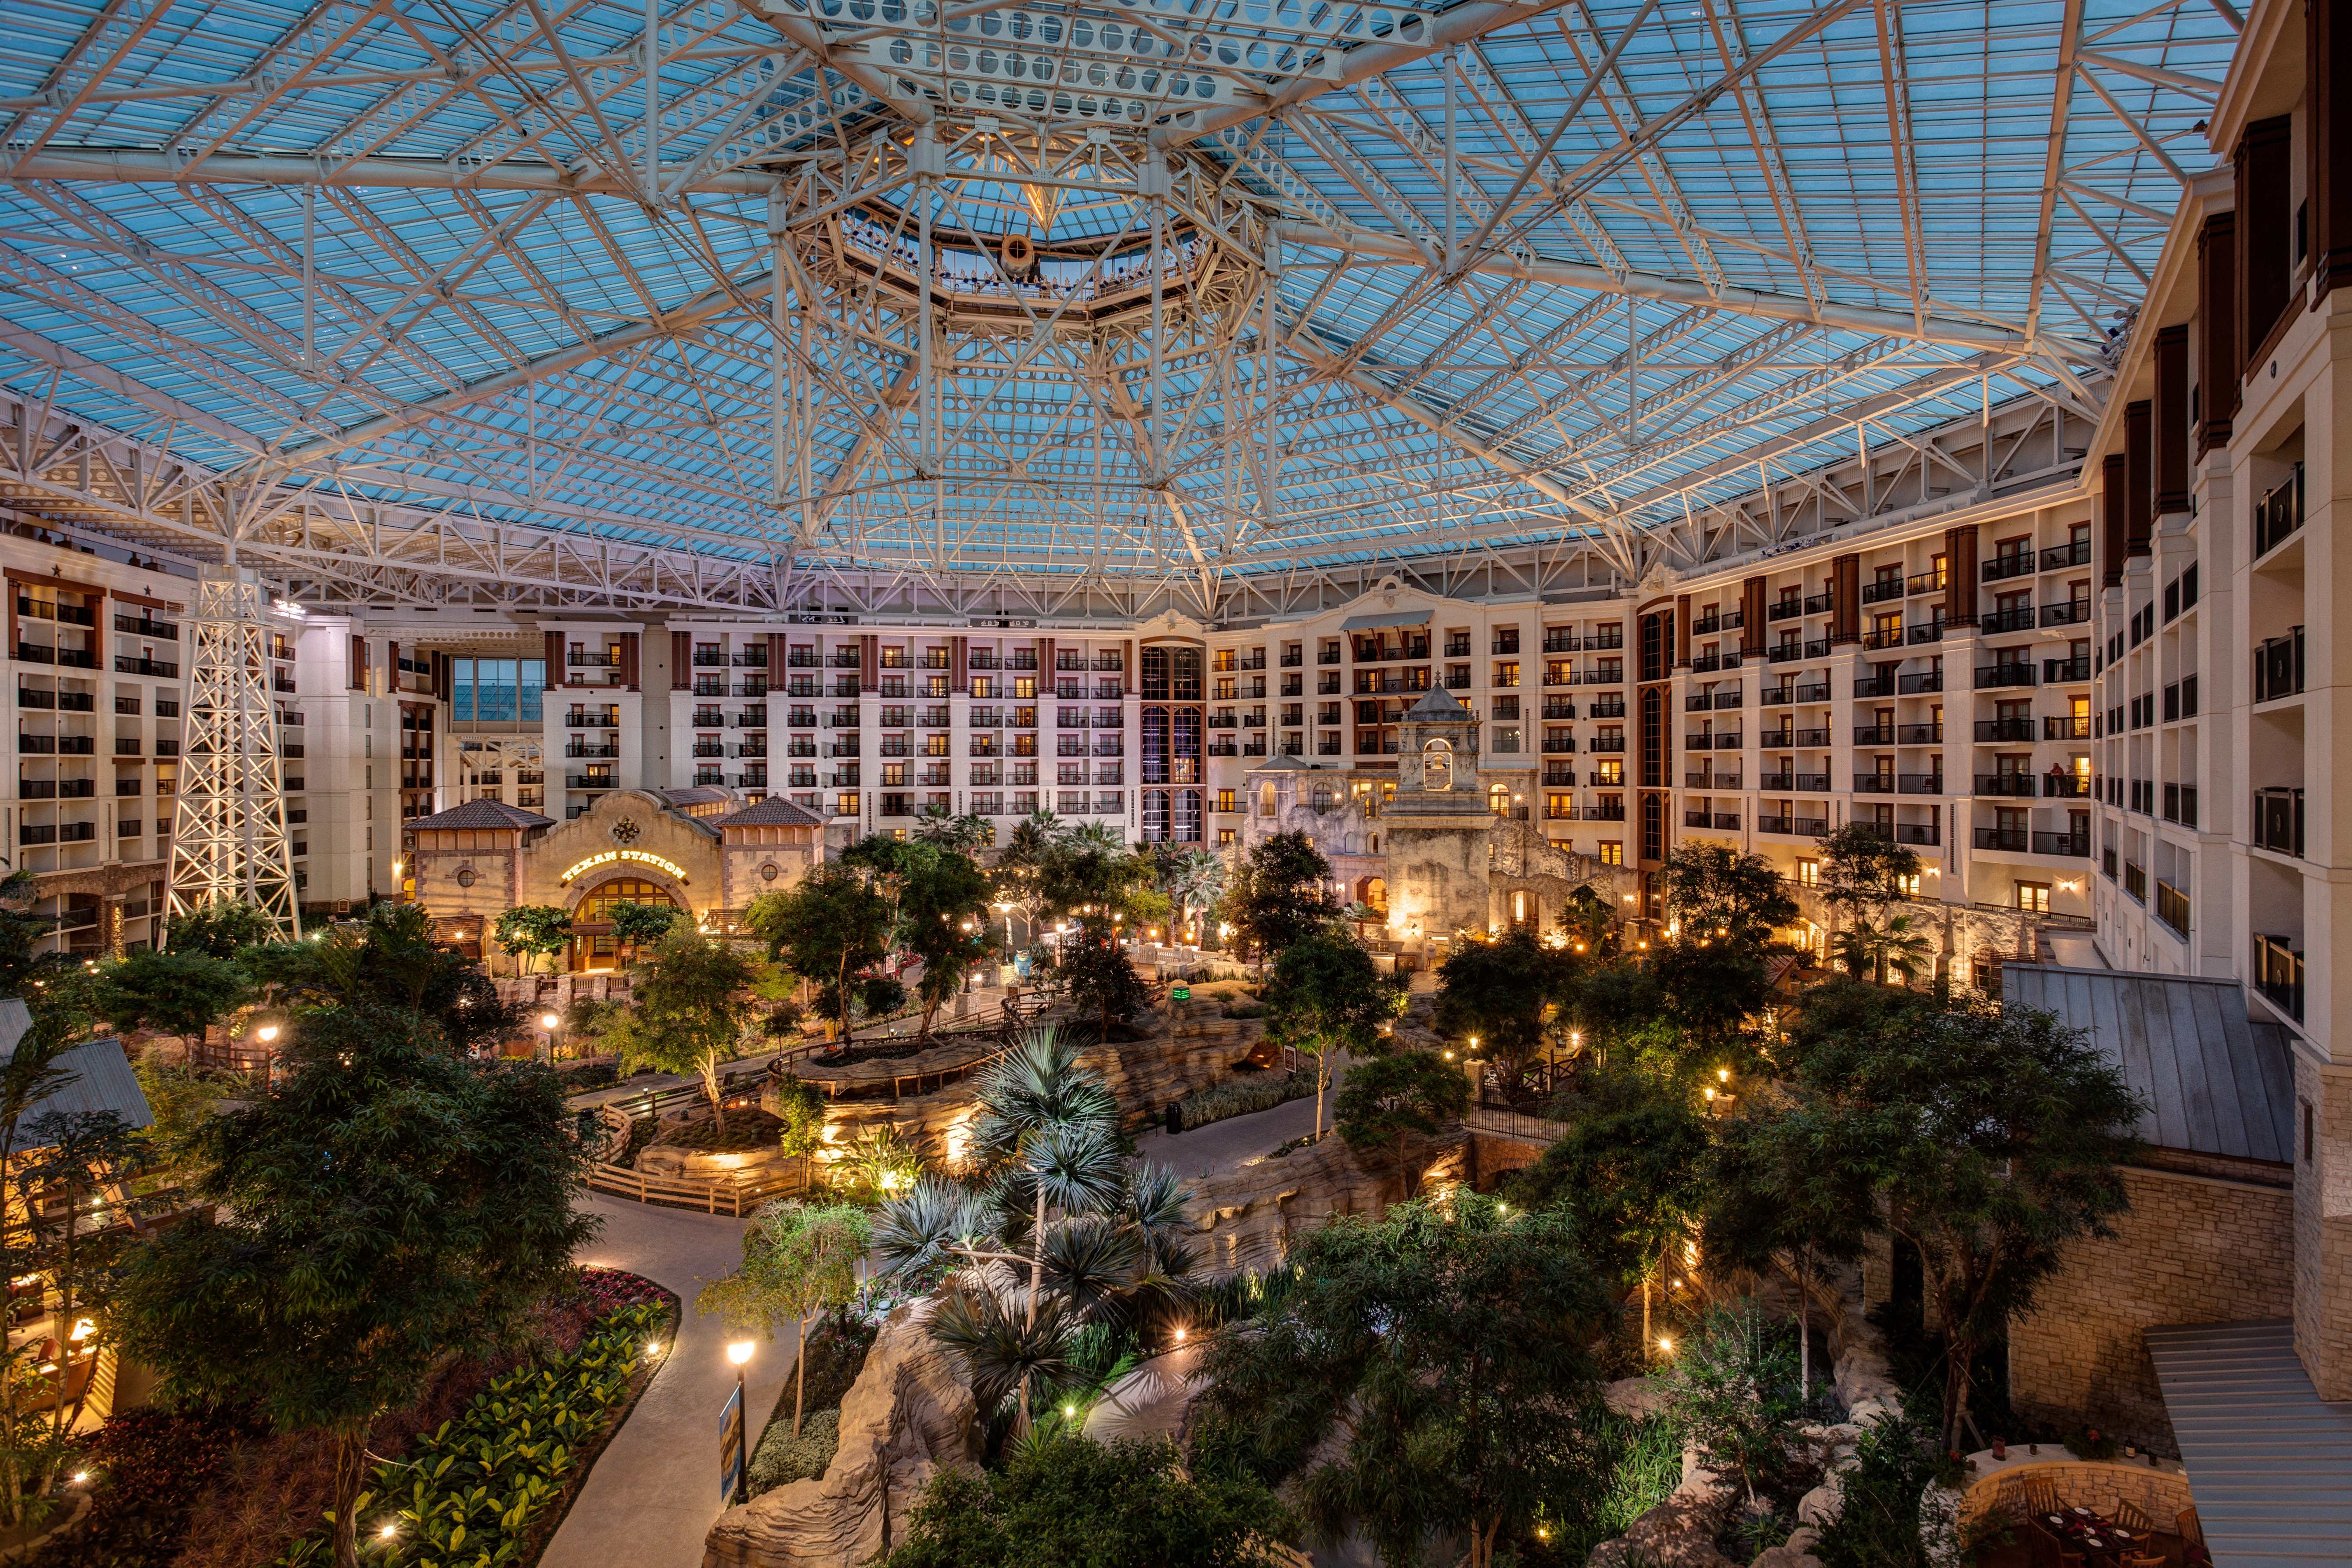 A View of the Gaylord Texan Atrirum